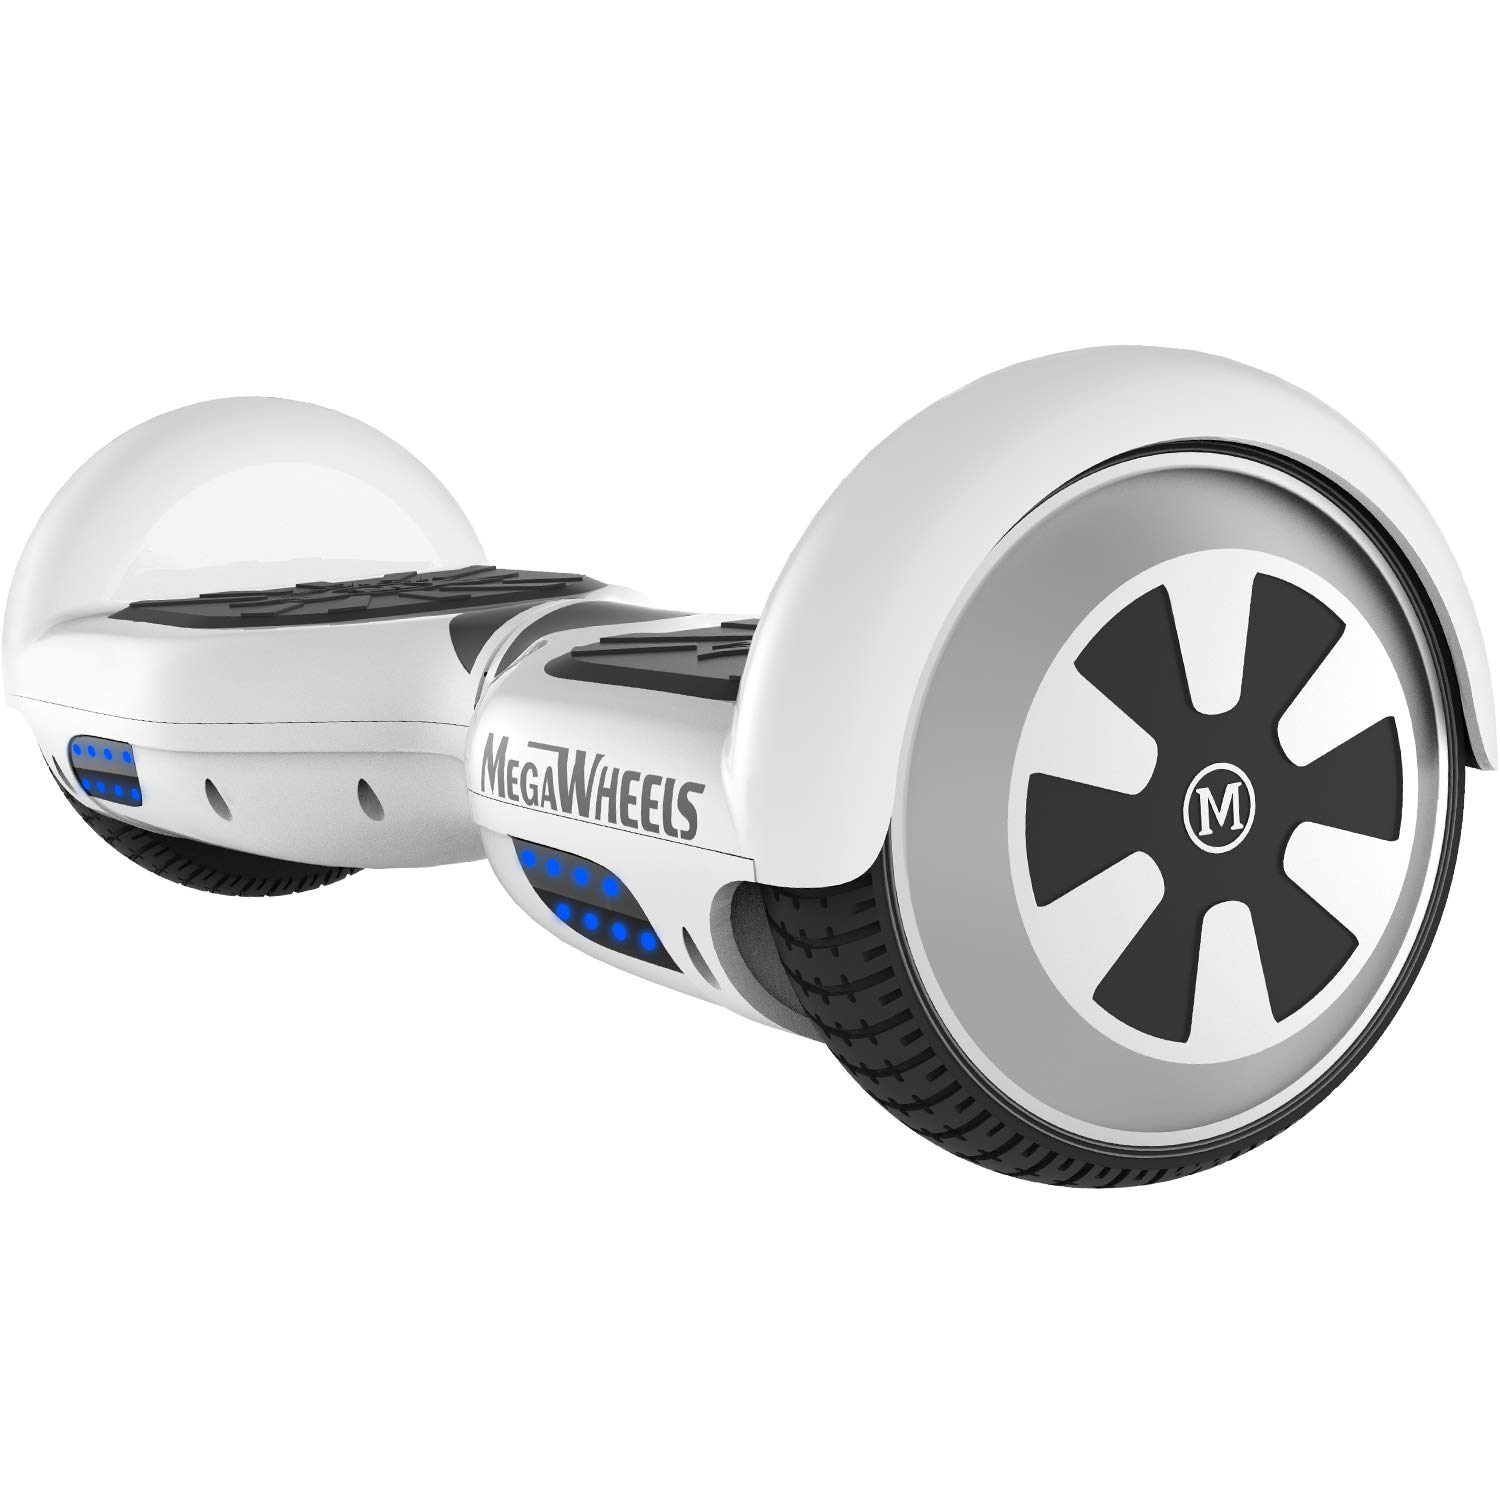 M MEGAWHEELS Hover Boards, 6.5″ Self Balance Bluetooth Scooter mit 2 * 250W Motor, LED Lights Elektro Scooter